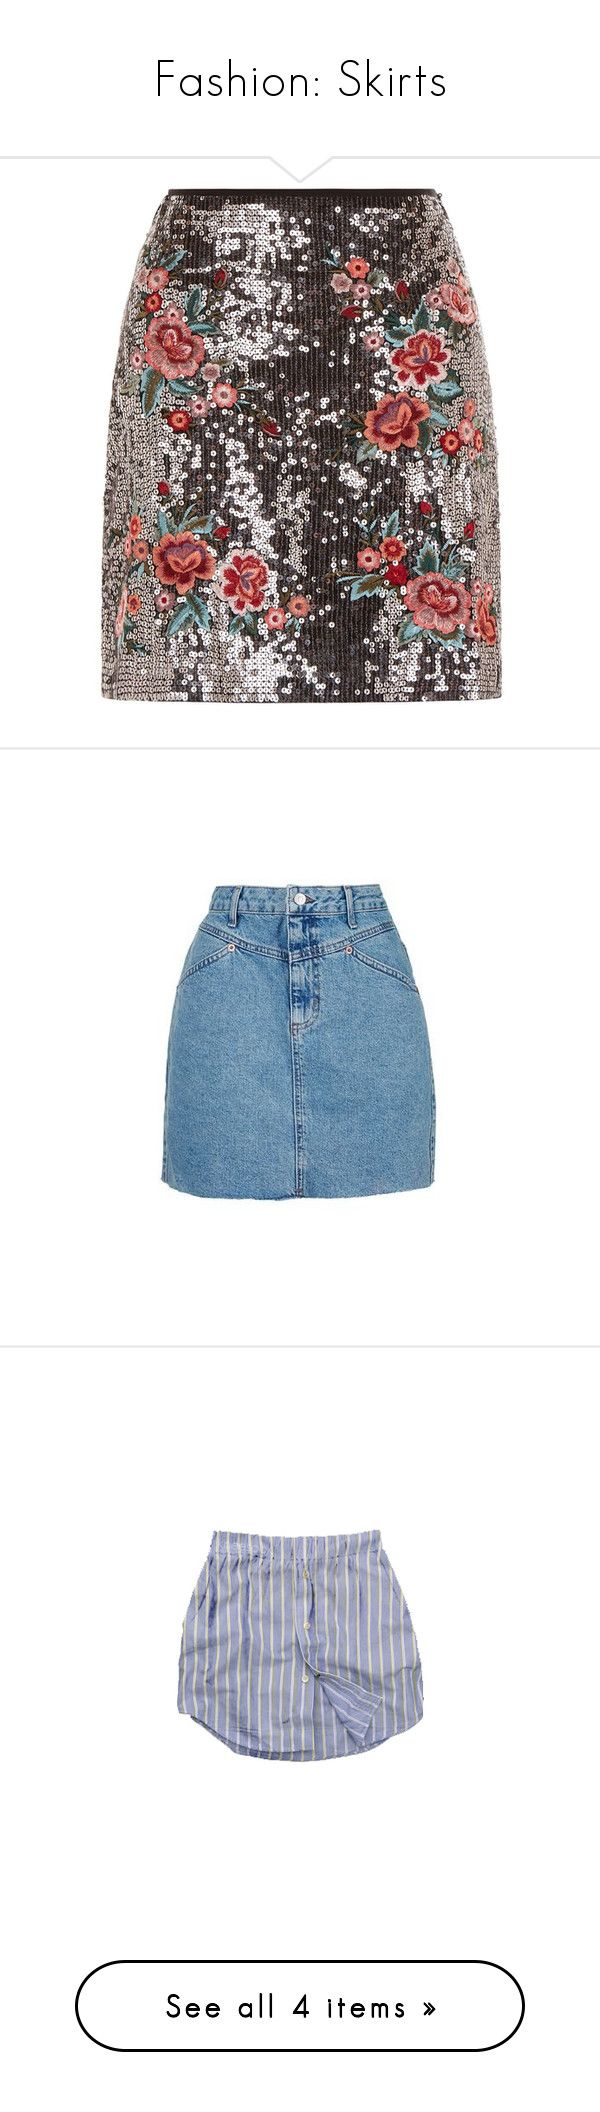 """""""Fashion: Skirts"""" by pecanutje ❤ liked on Polyvore featuring skirts, clearance, silver, sequin a line skirt, knee length a line skirt, going out skirts, a line skirt, party skirts, mini skirts and bottoms"""